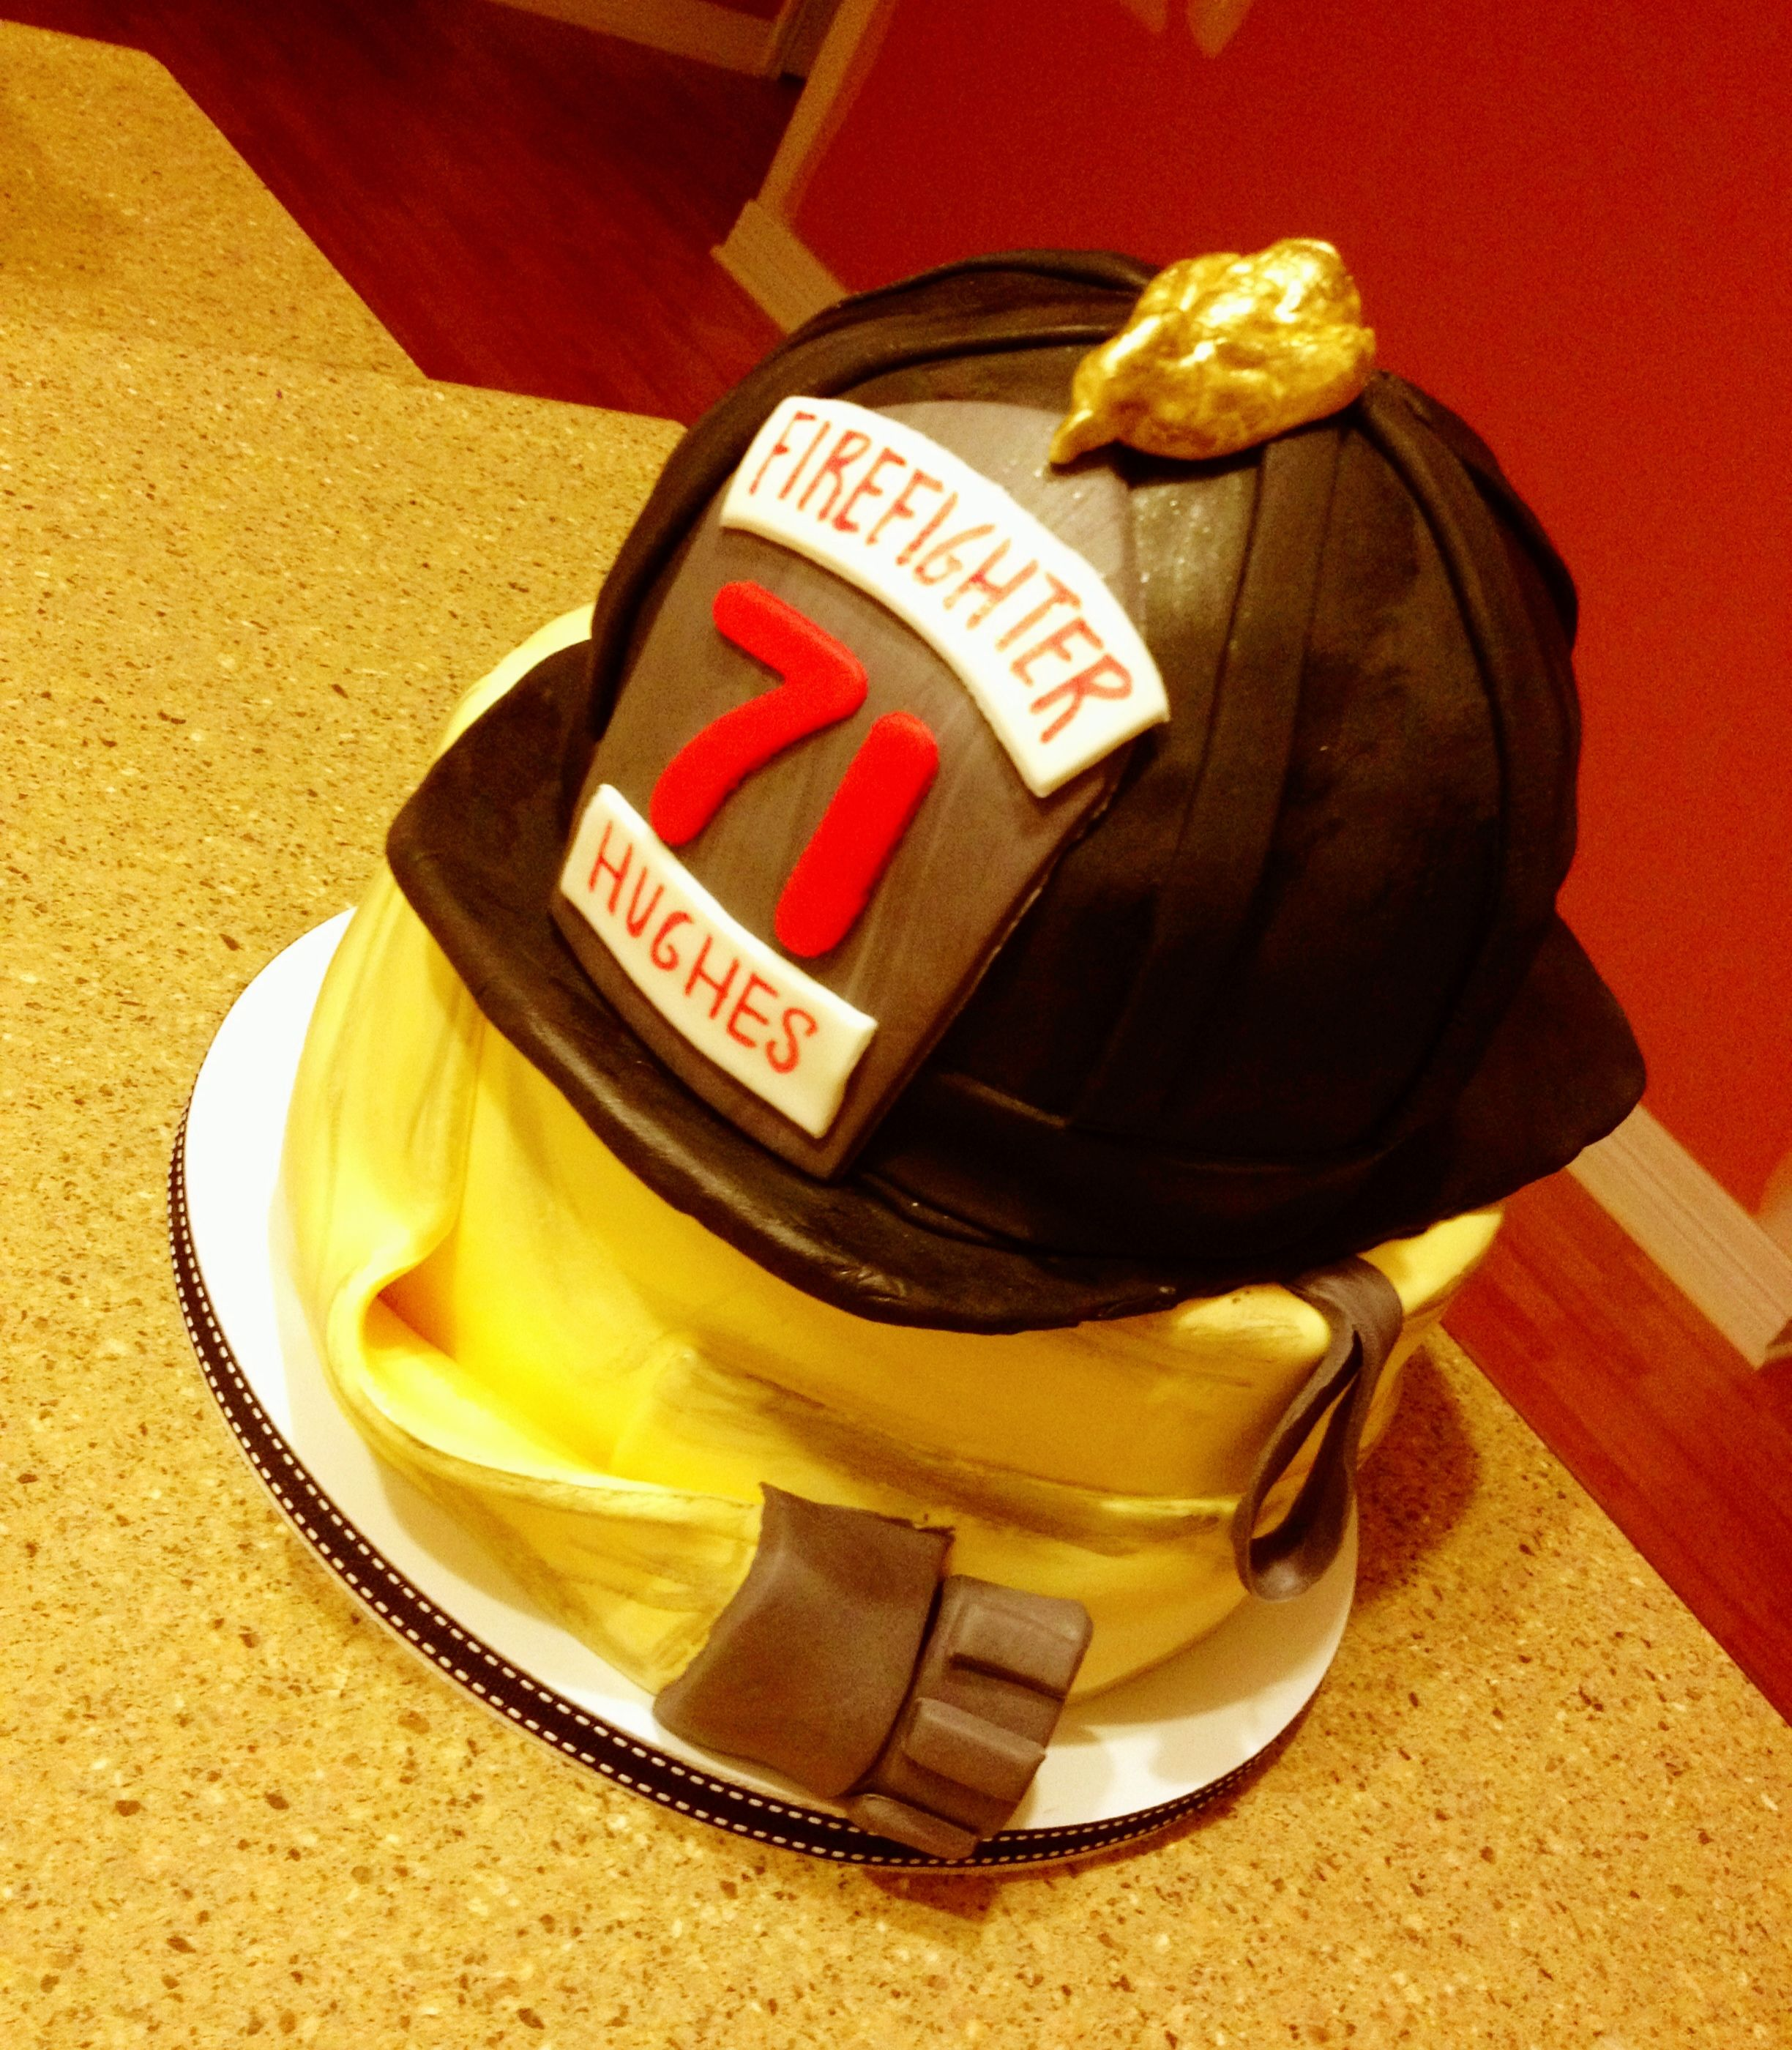 Firefighter Cake Image